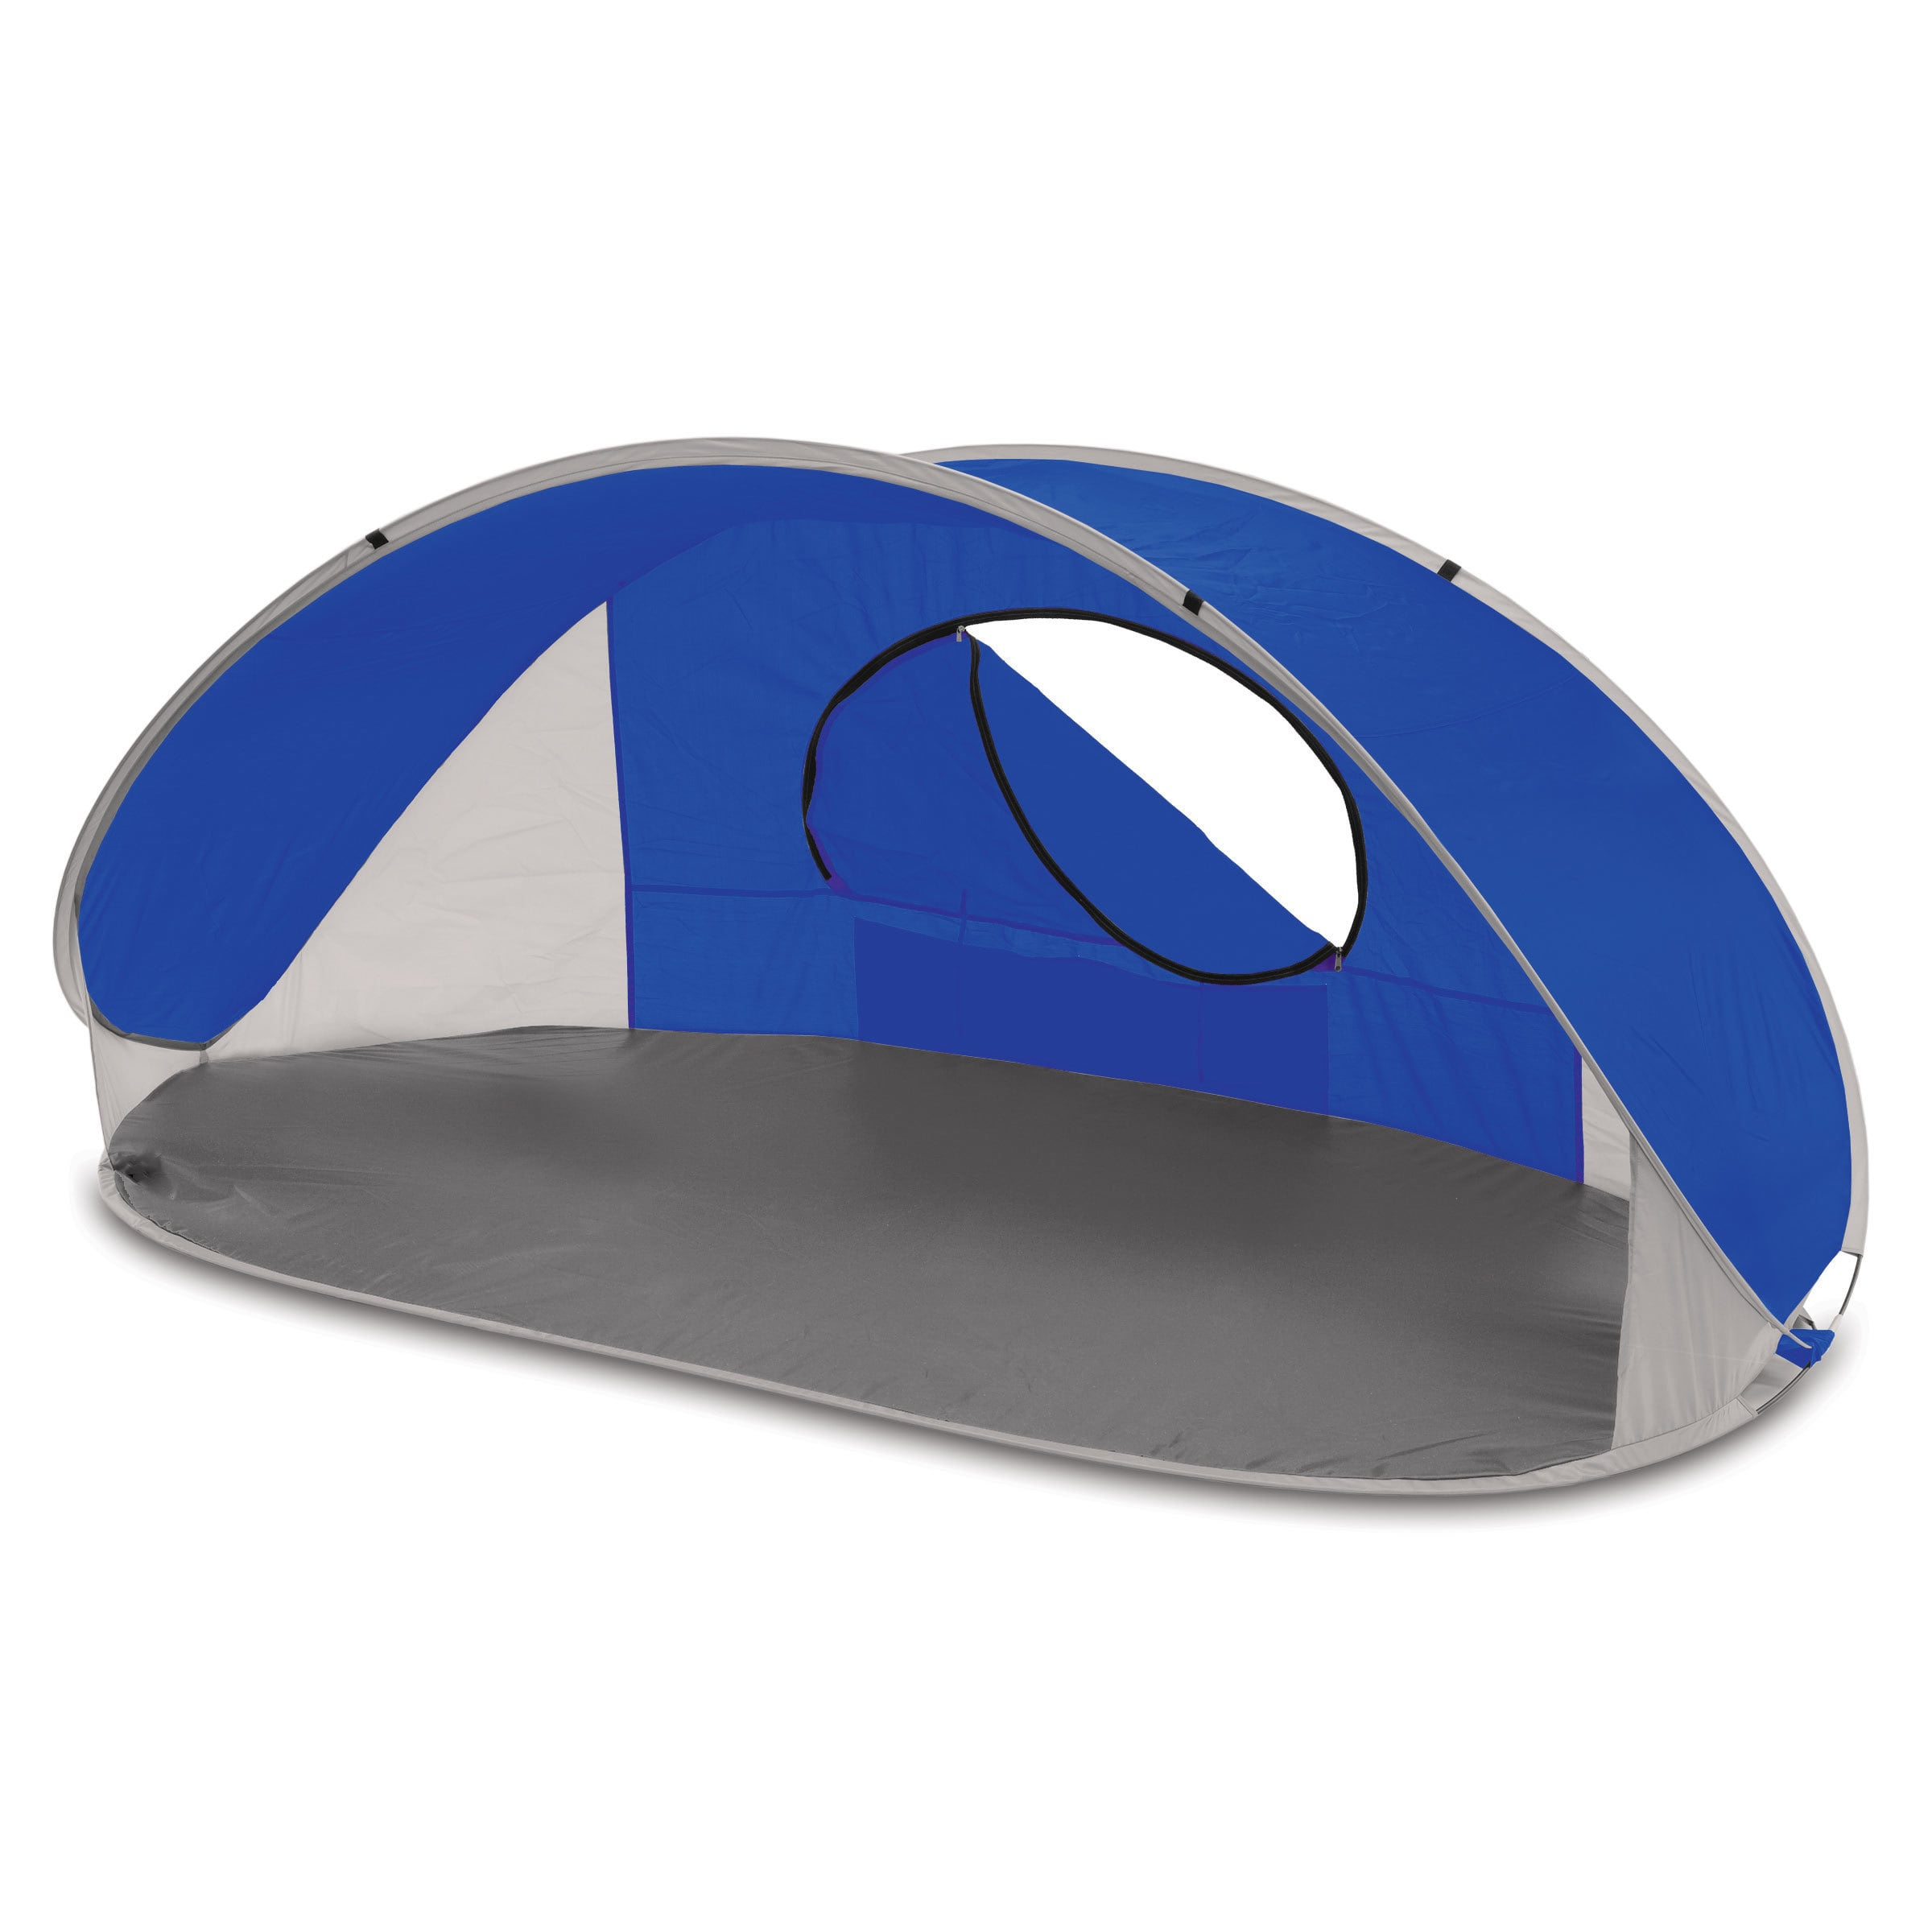 new products a03c2 2f2b2 Oniva 113-00-100-000-0 Manta Sun Shelter, Red with Grey Trim